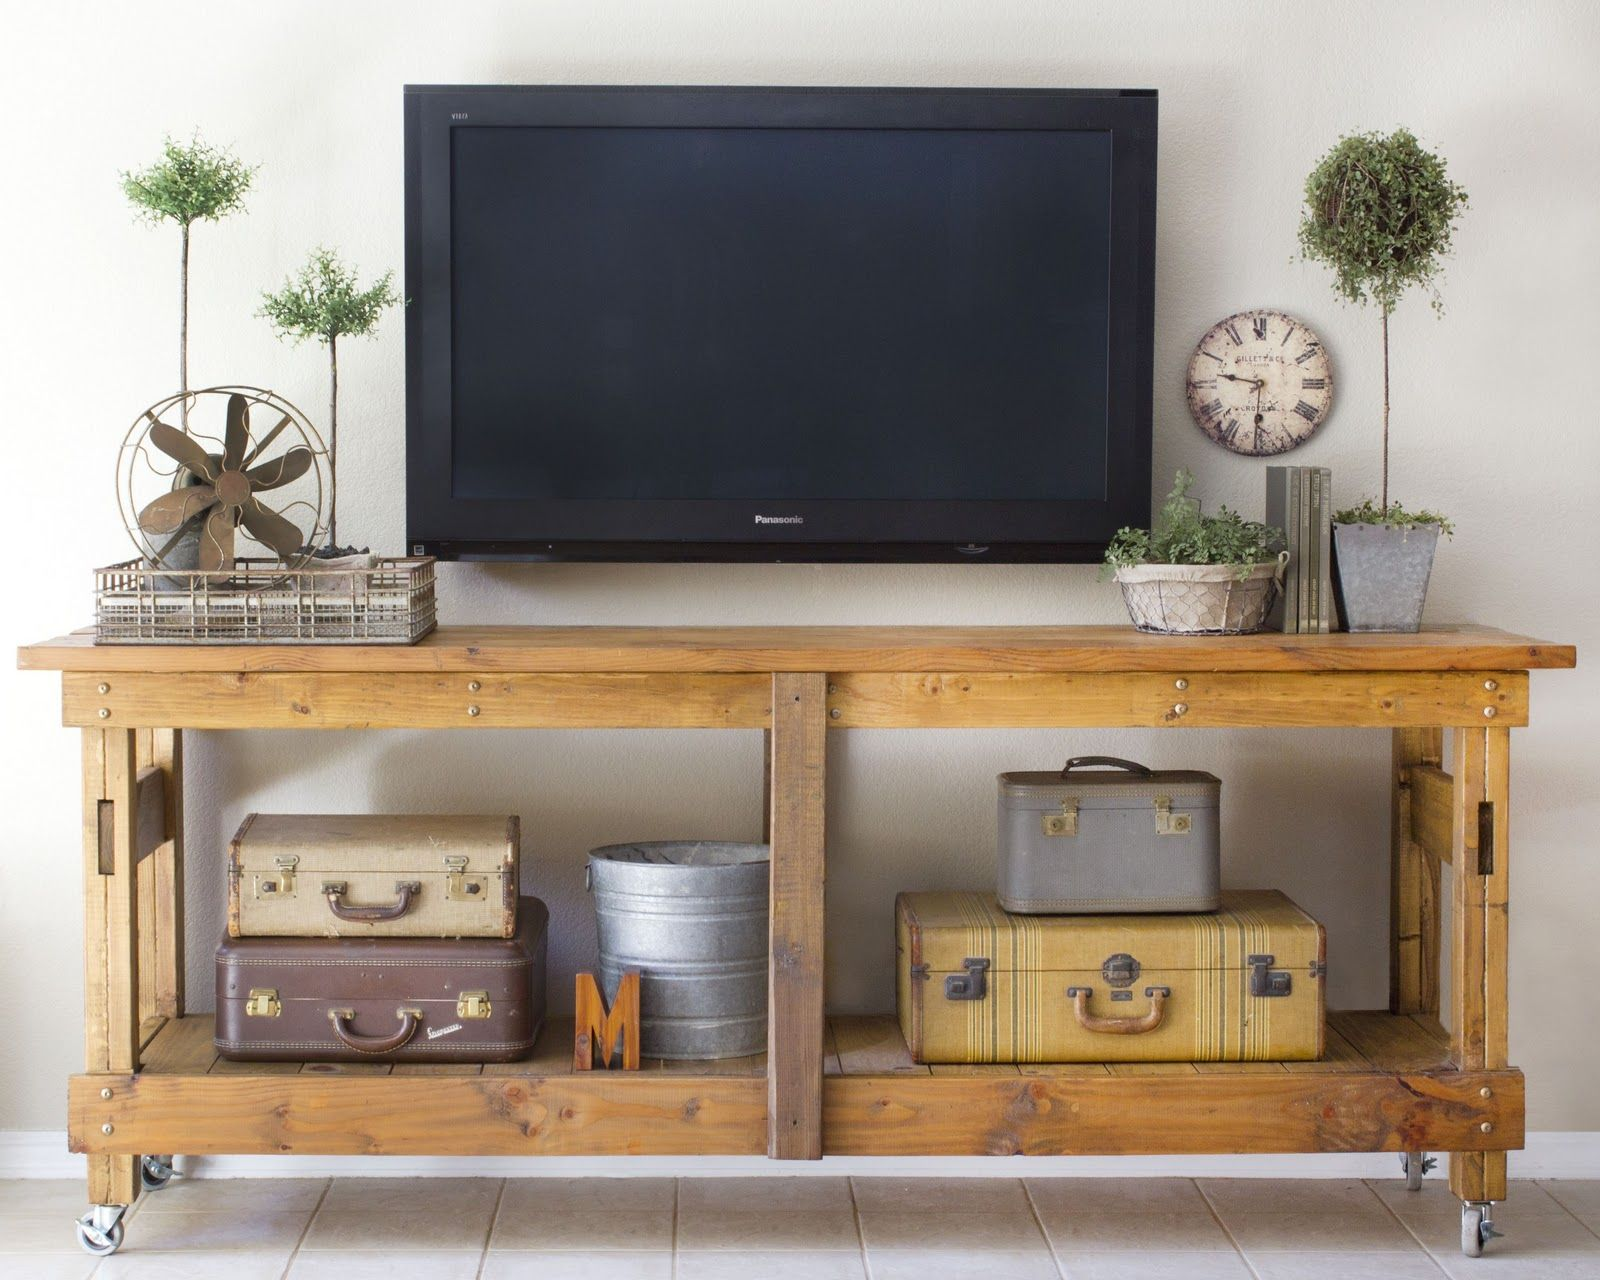 Cool TV Stand Designs for Your Home tv stand ideas diy, tv stand ideas for  living room, tv stand ideas bedroo… | Tv stand wood, Wood tv stand rustic, Tv  stand decor